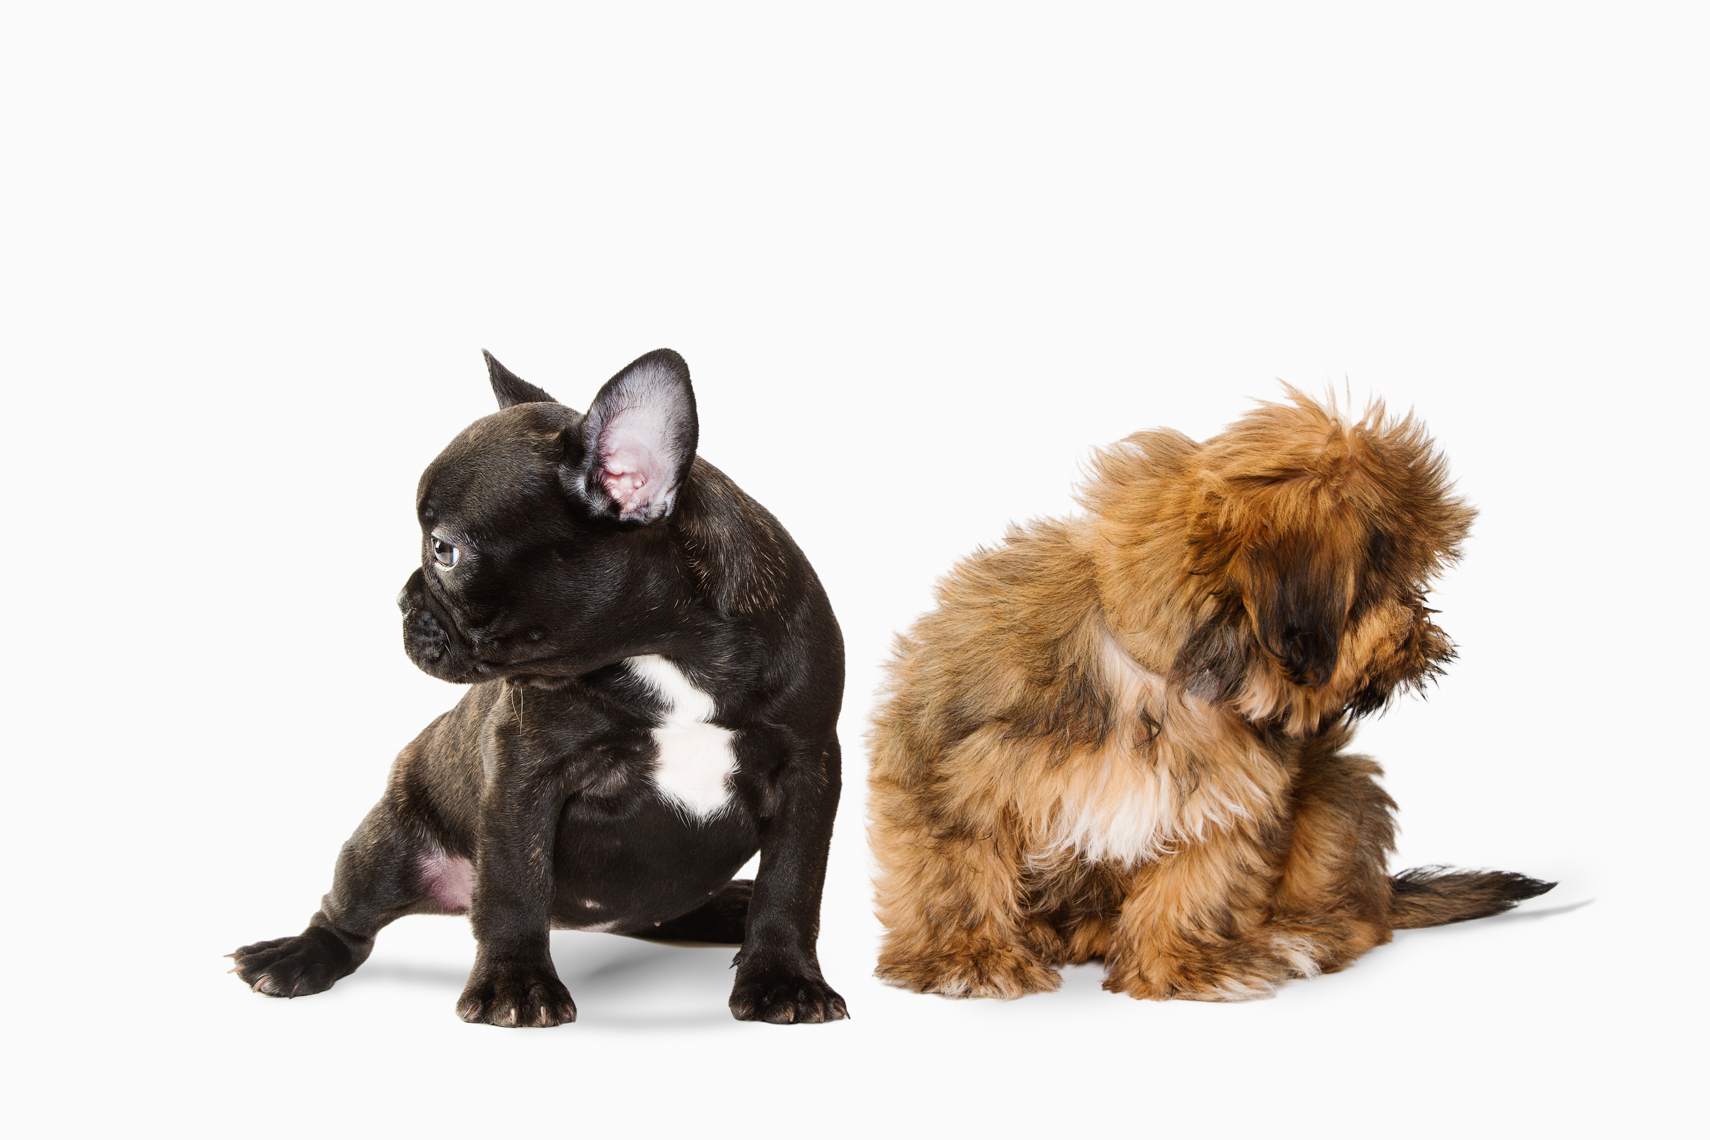 French Bulldog and Shorkie puppy together in a studio